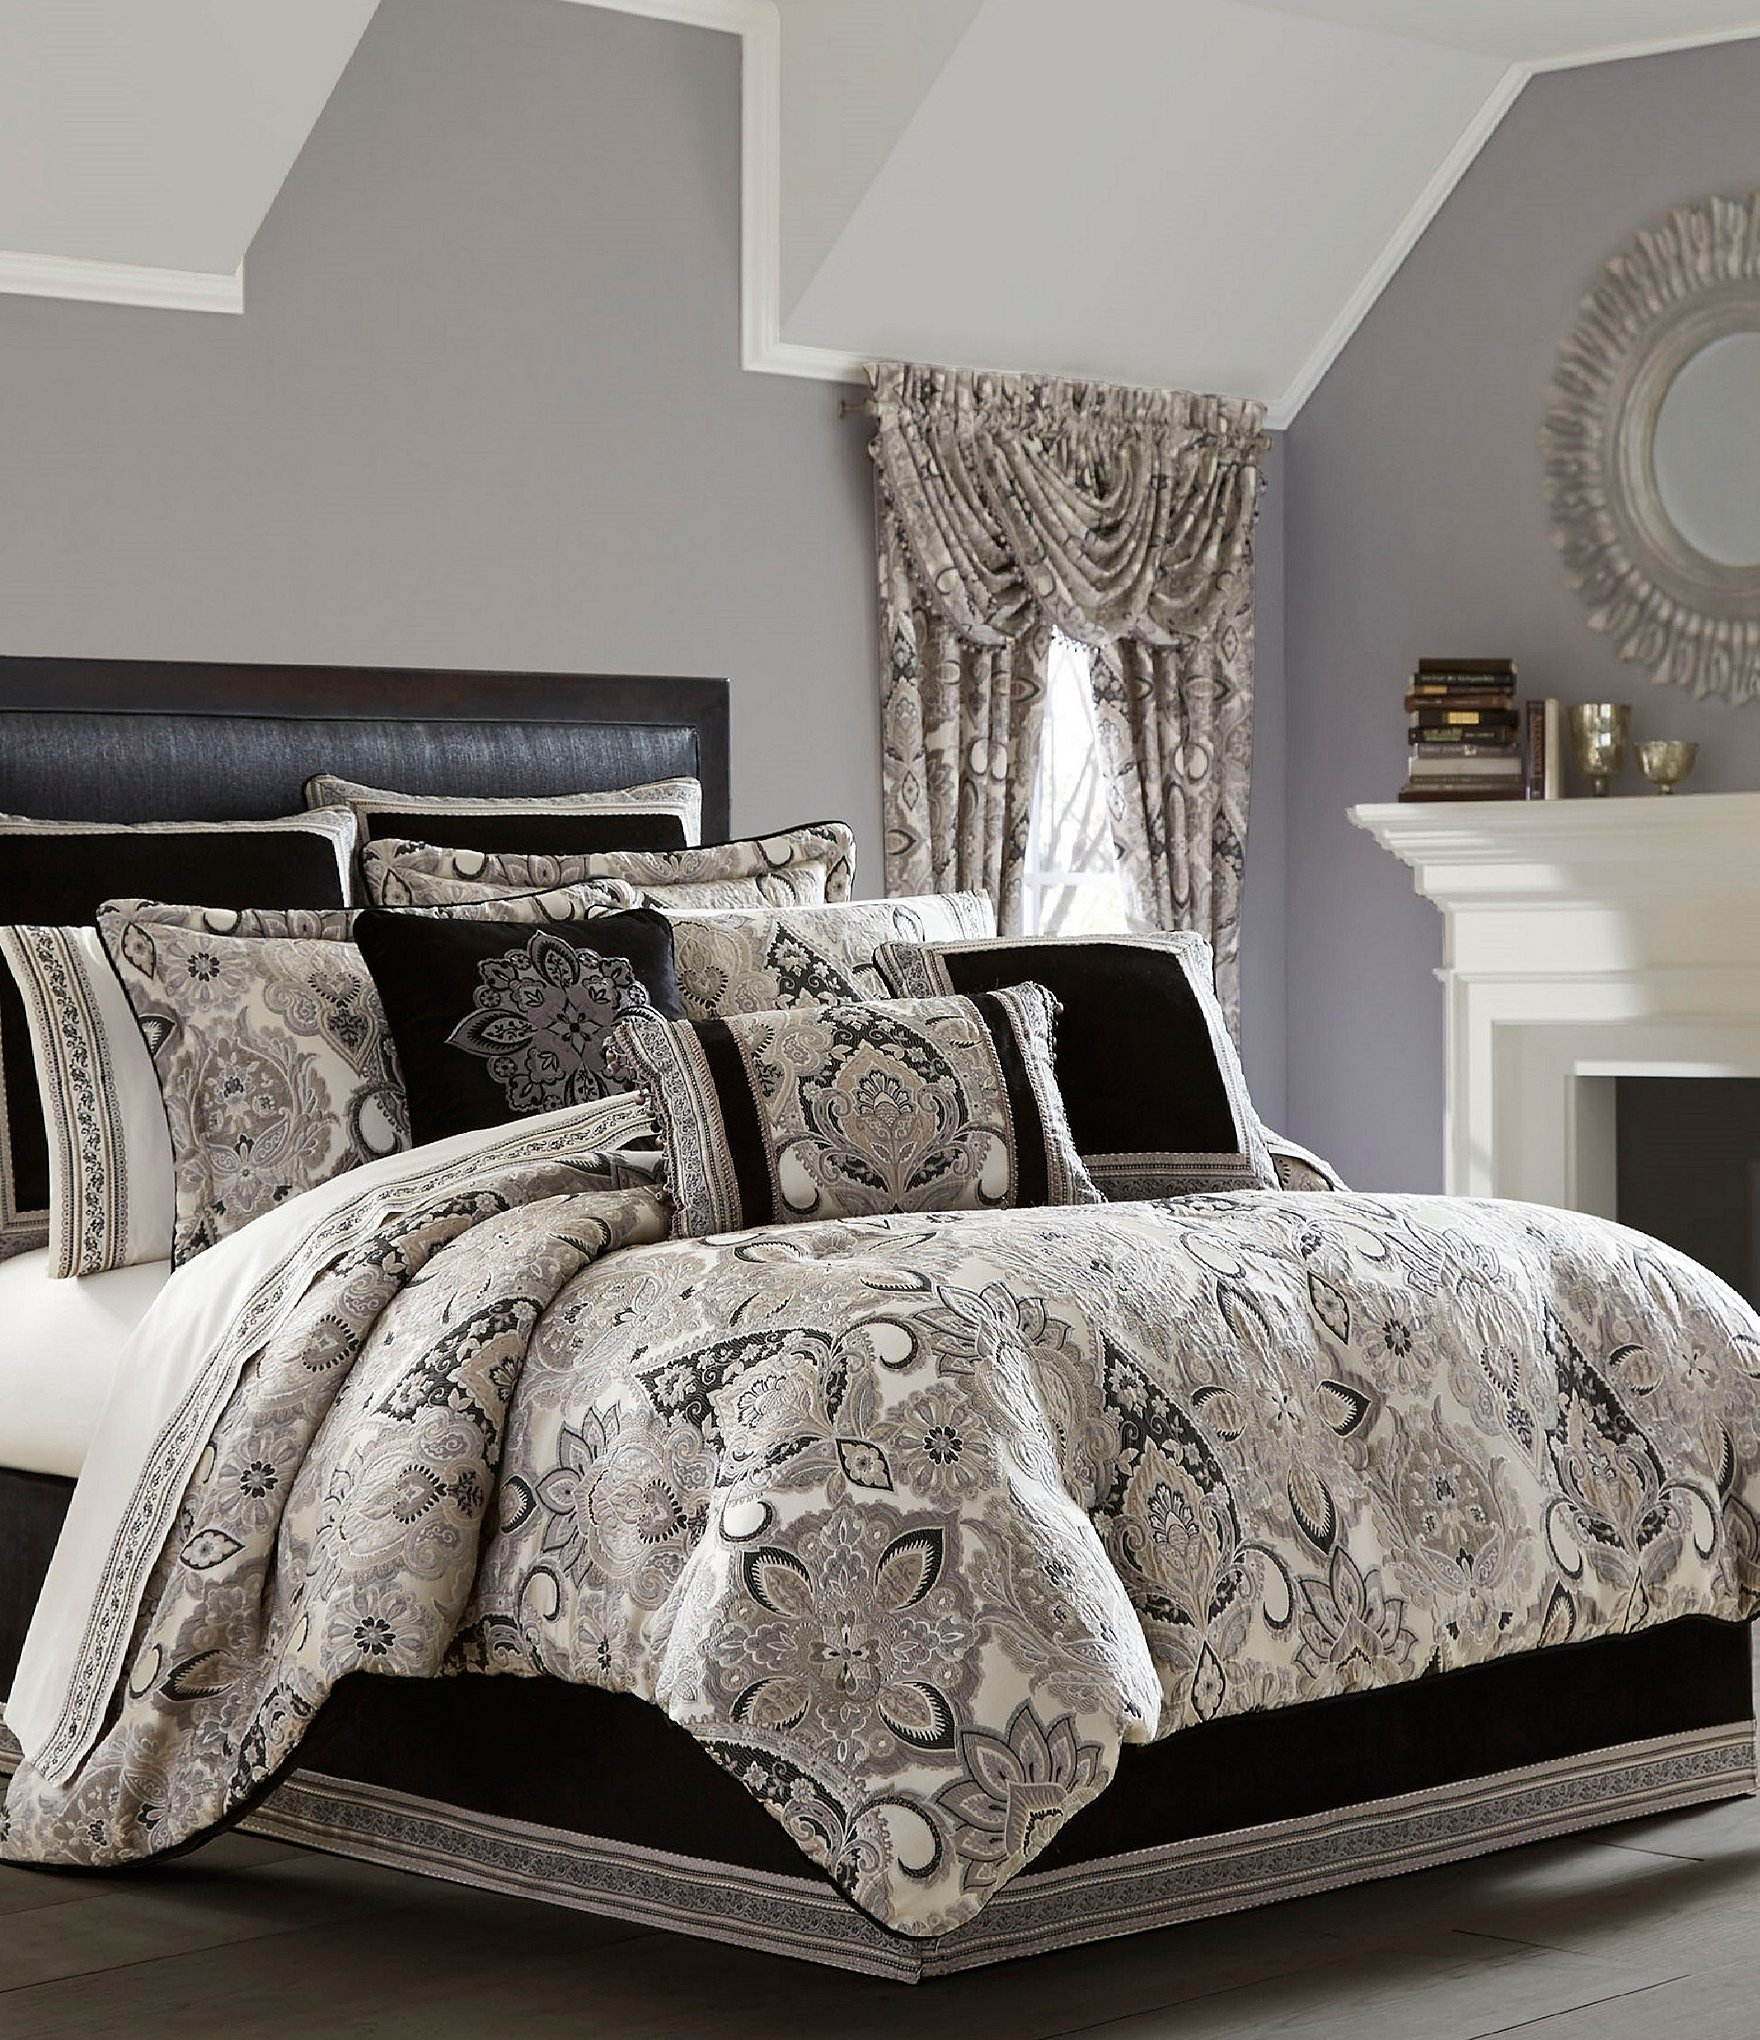 of for valance shower design tar curtains lovely bed and gorgeous curtain home window comforter ideas toppers kitchen bath cafe beyond gray dillards coral panels sets at drapery decoration